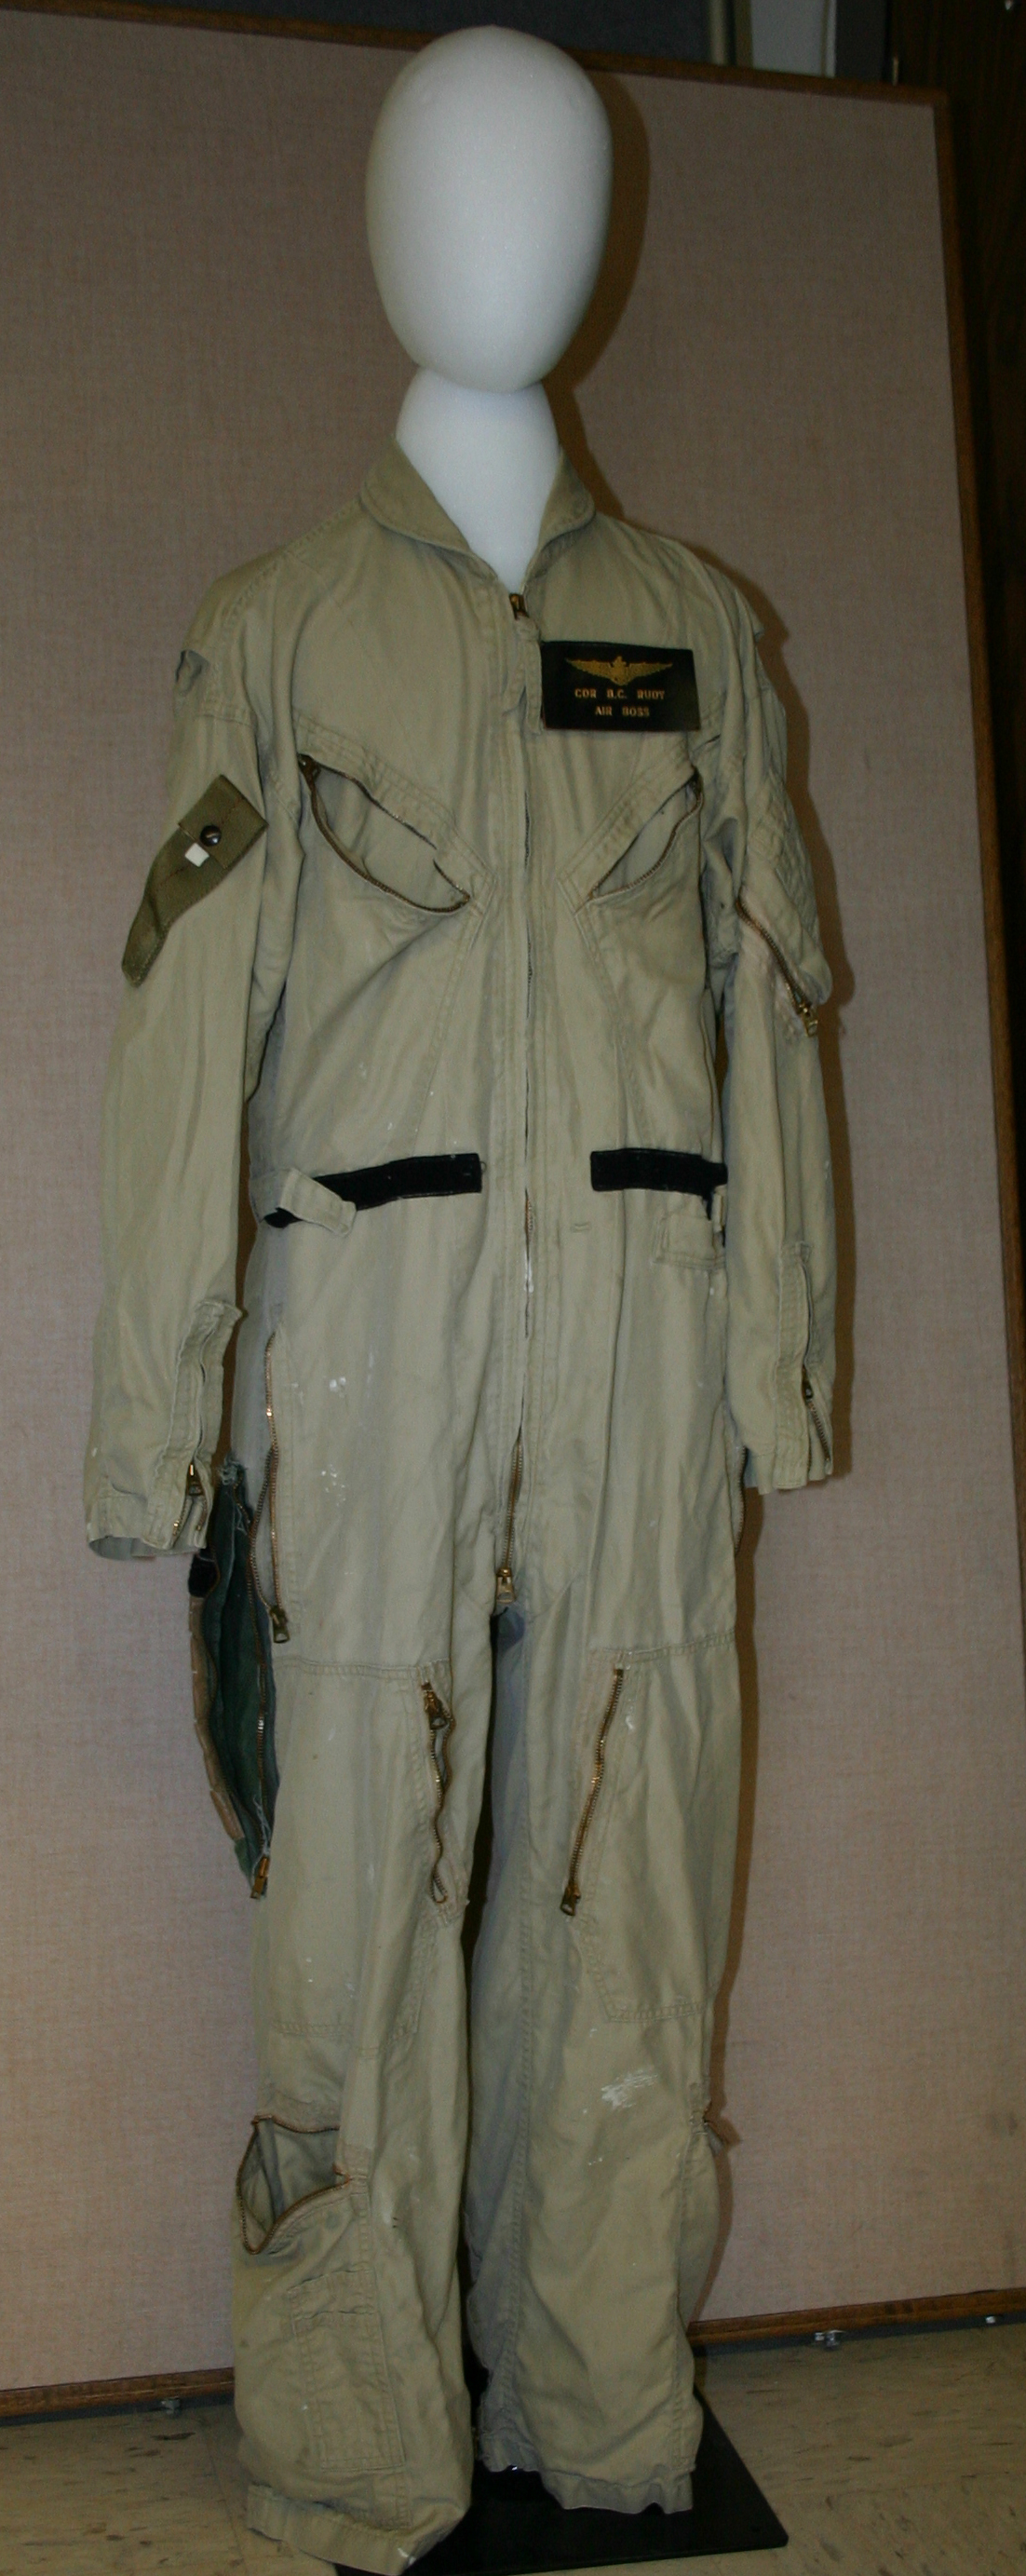 U.S. Navy summer flying coveralls with U.S. Naval Aviator identification patch that says CDR B.C. Rudy, Air Boss